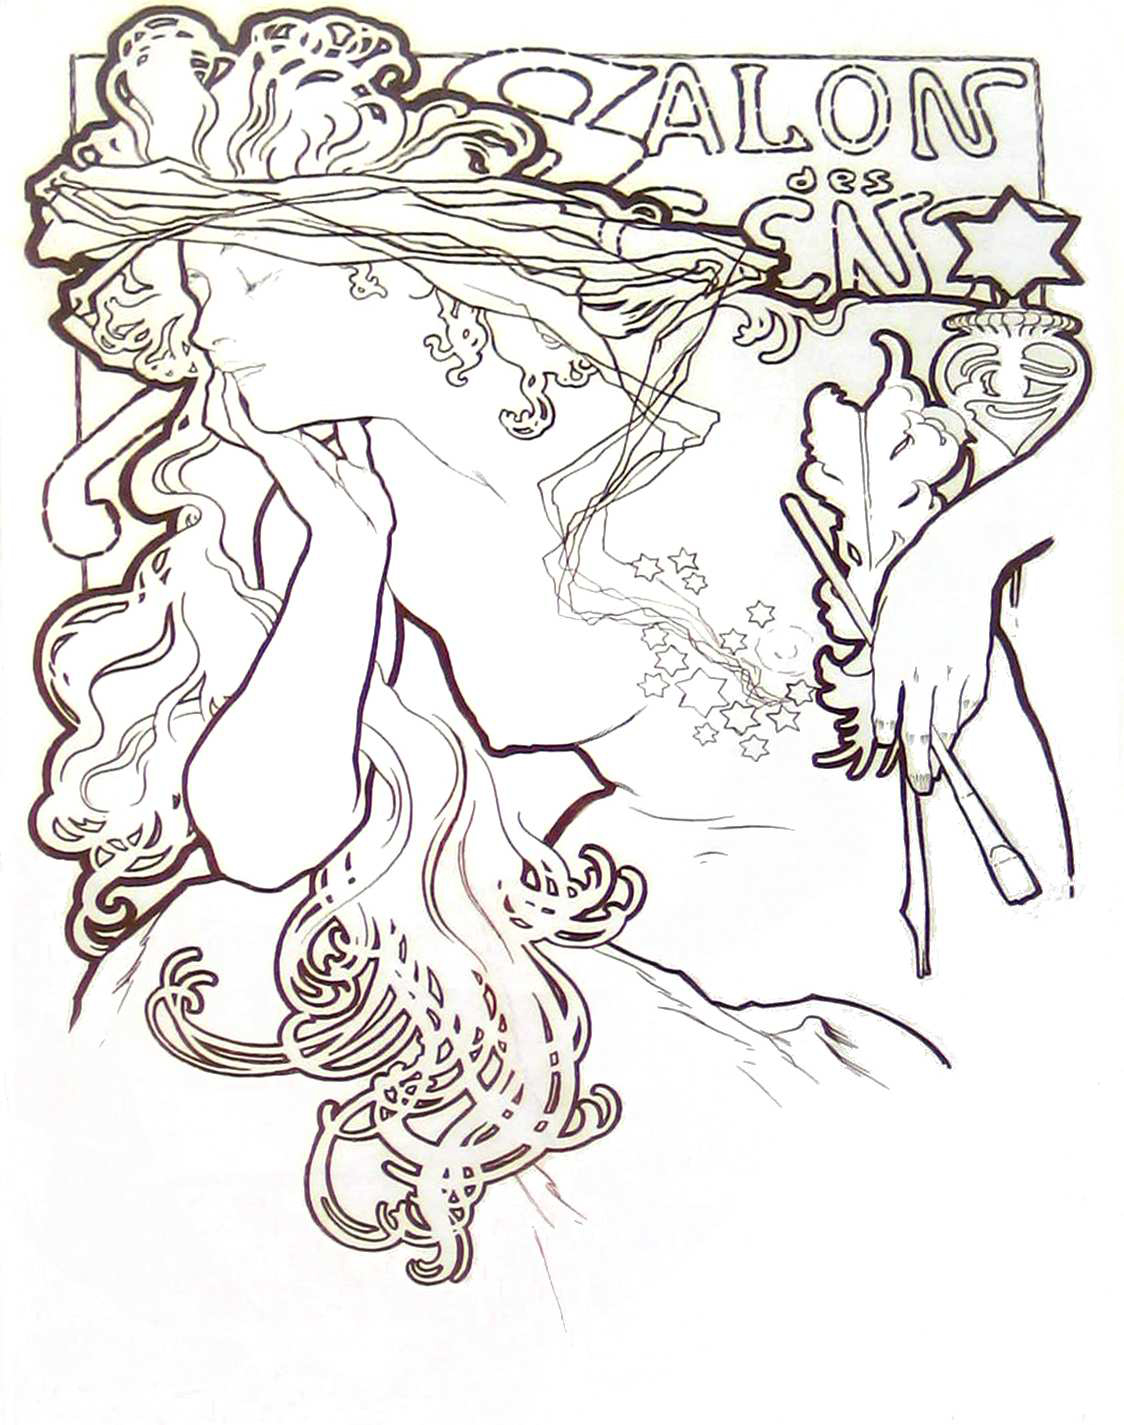 A coloring page of a woman